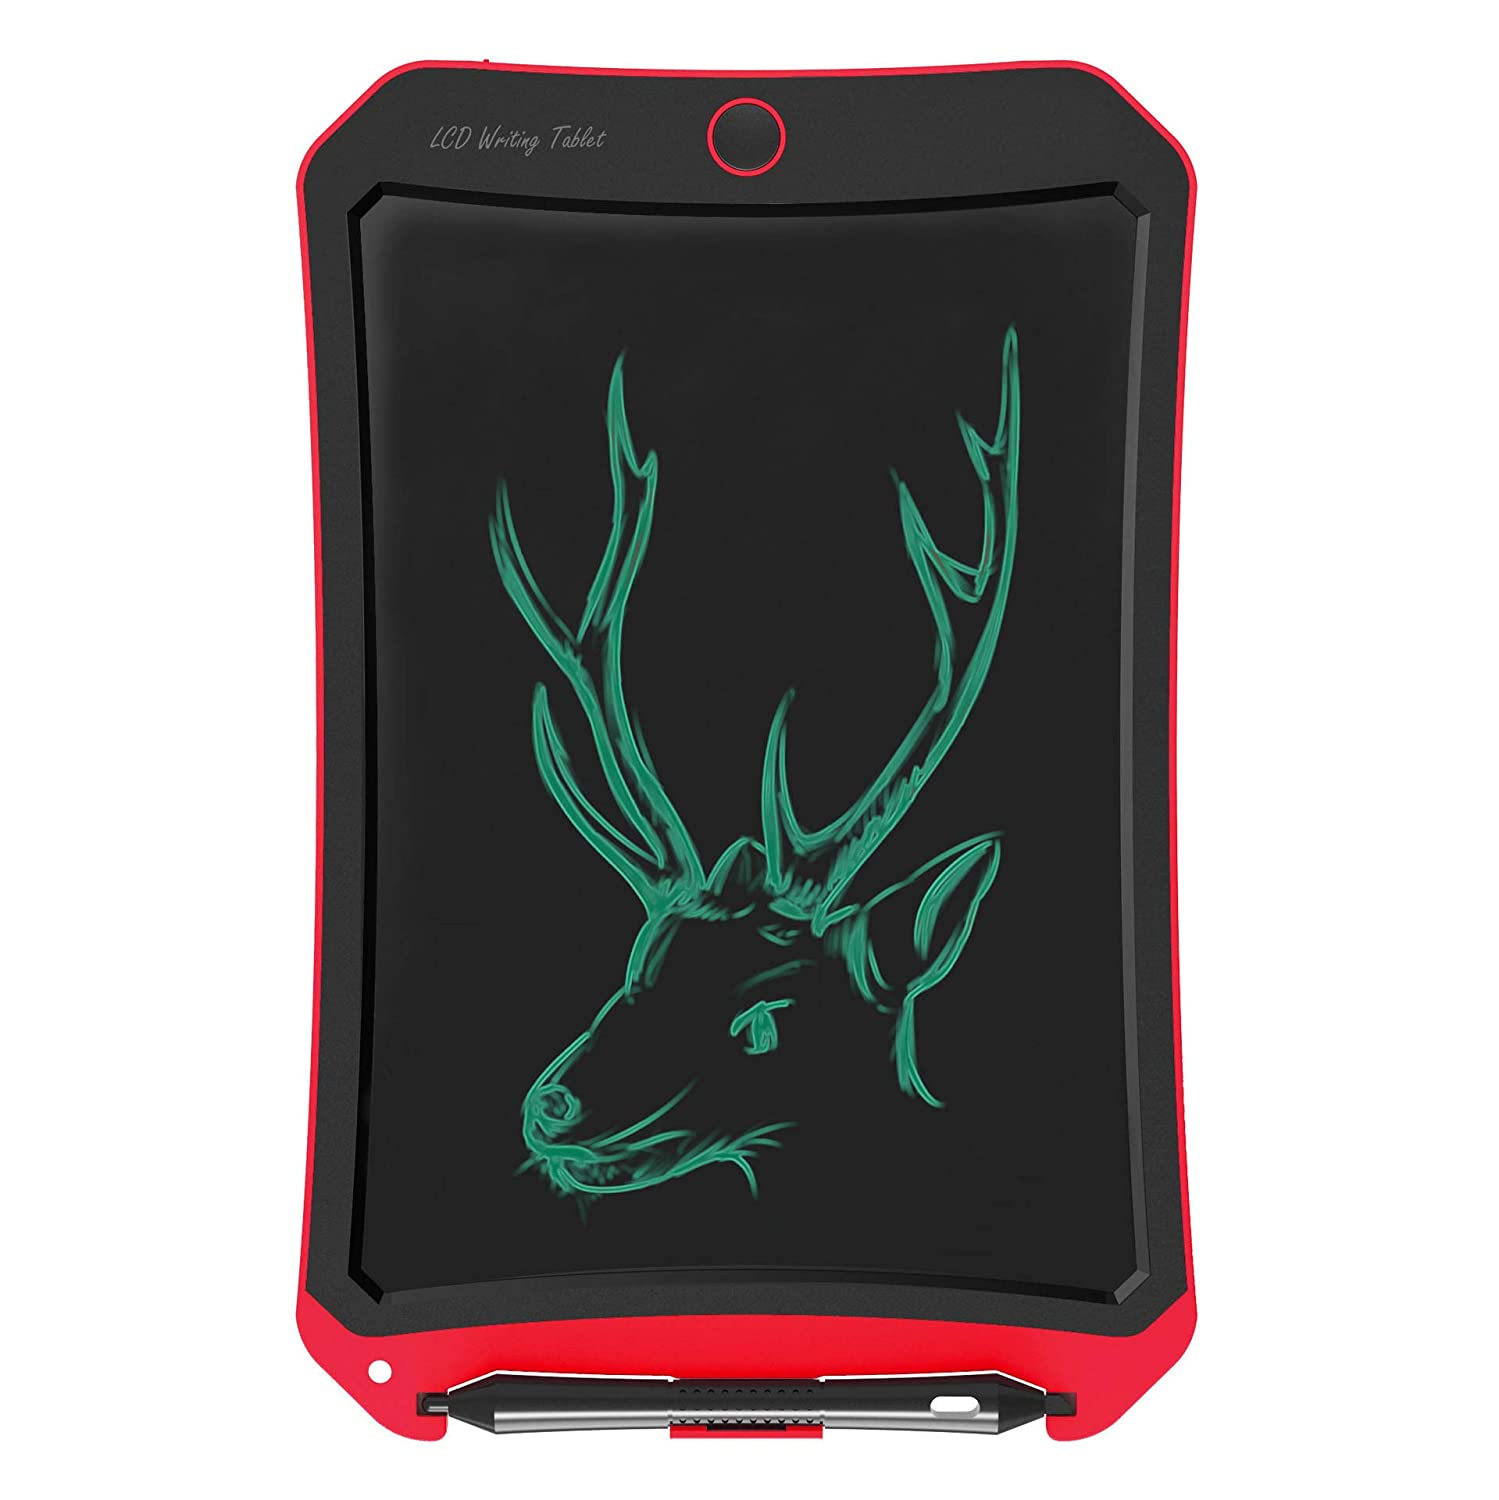 Spring& Writing Tablet for Birthday Gift,Kids Toy 8.5 In LCD Writing Tablet Electronic Writings Pads Drawing Board Gifts for Kids Office Blackboard-Erase Button Lock Included (Red-d)